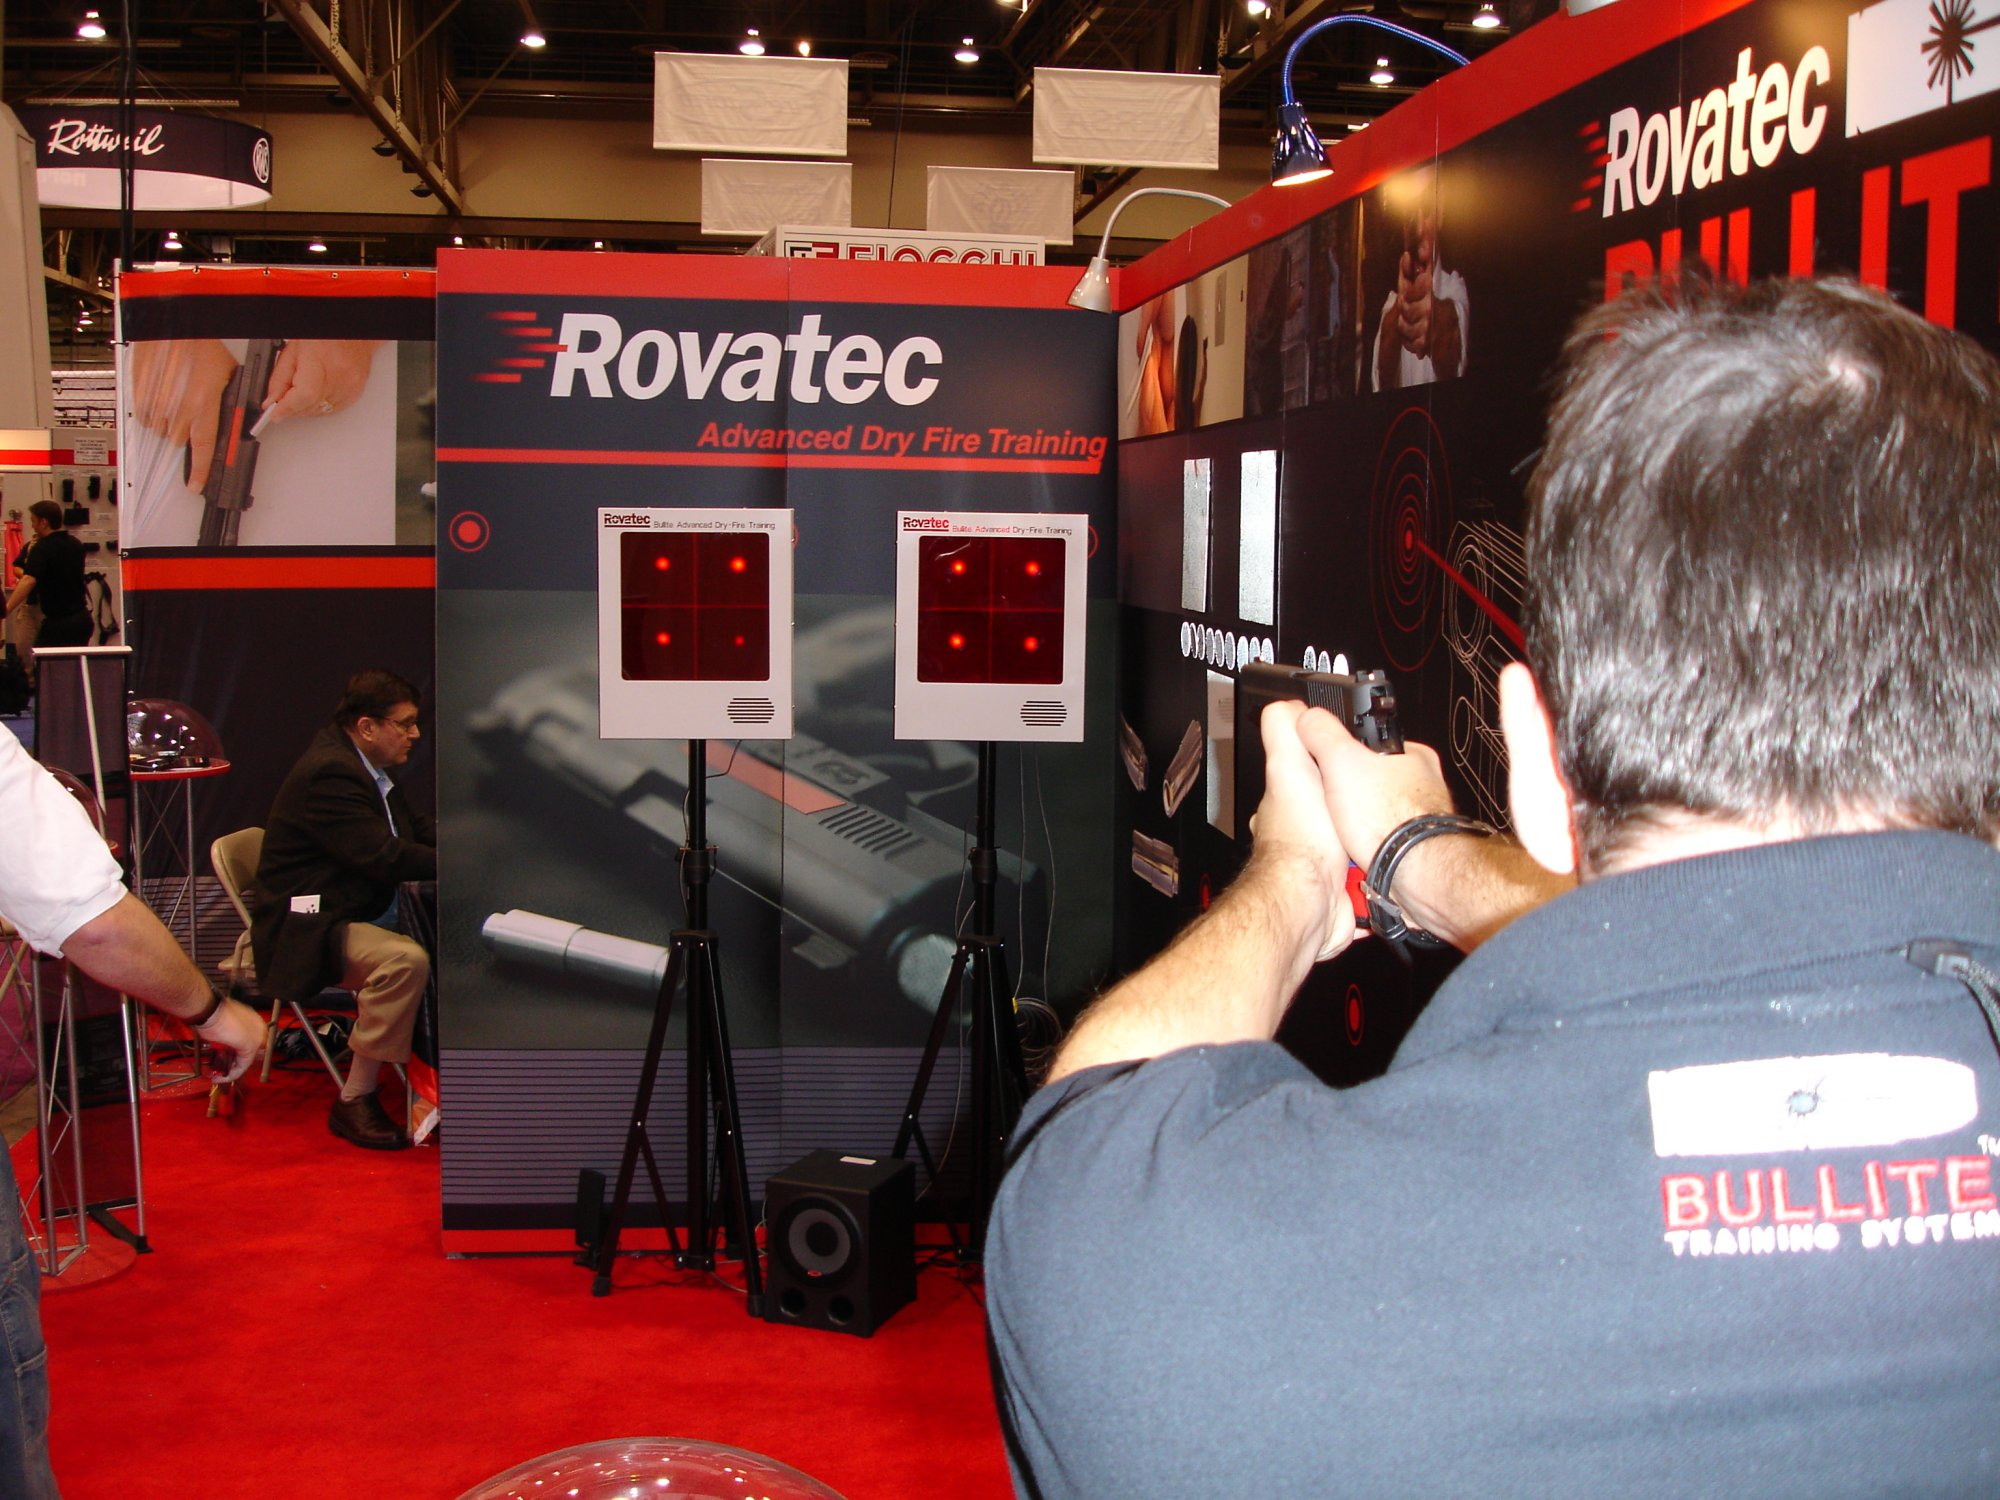 ROVATEC 2 <!  :en  >SHOT Show 2005: Rovatec Bullite Training System for Tactical Shooters<!  :  >